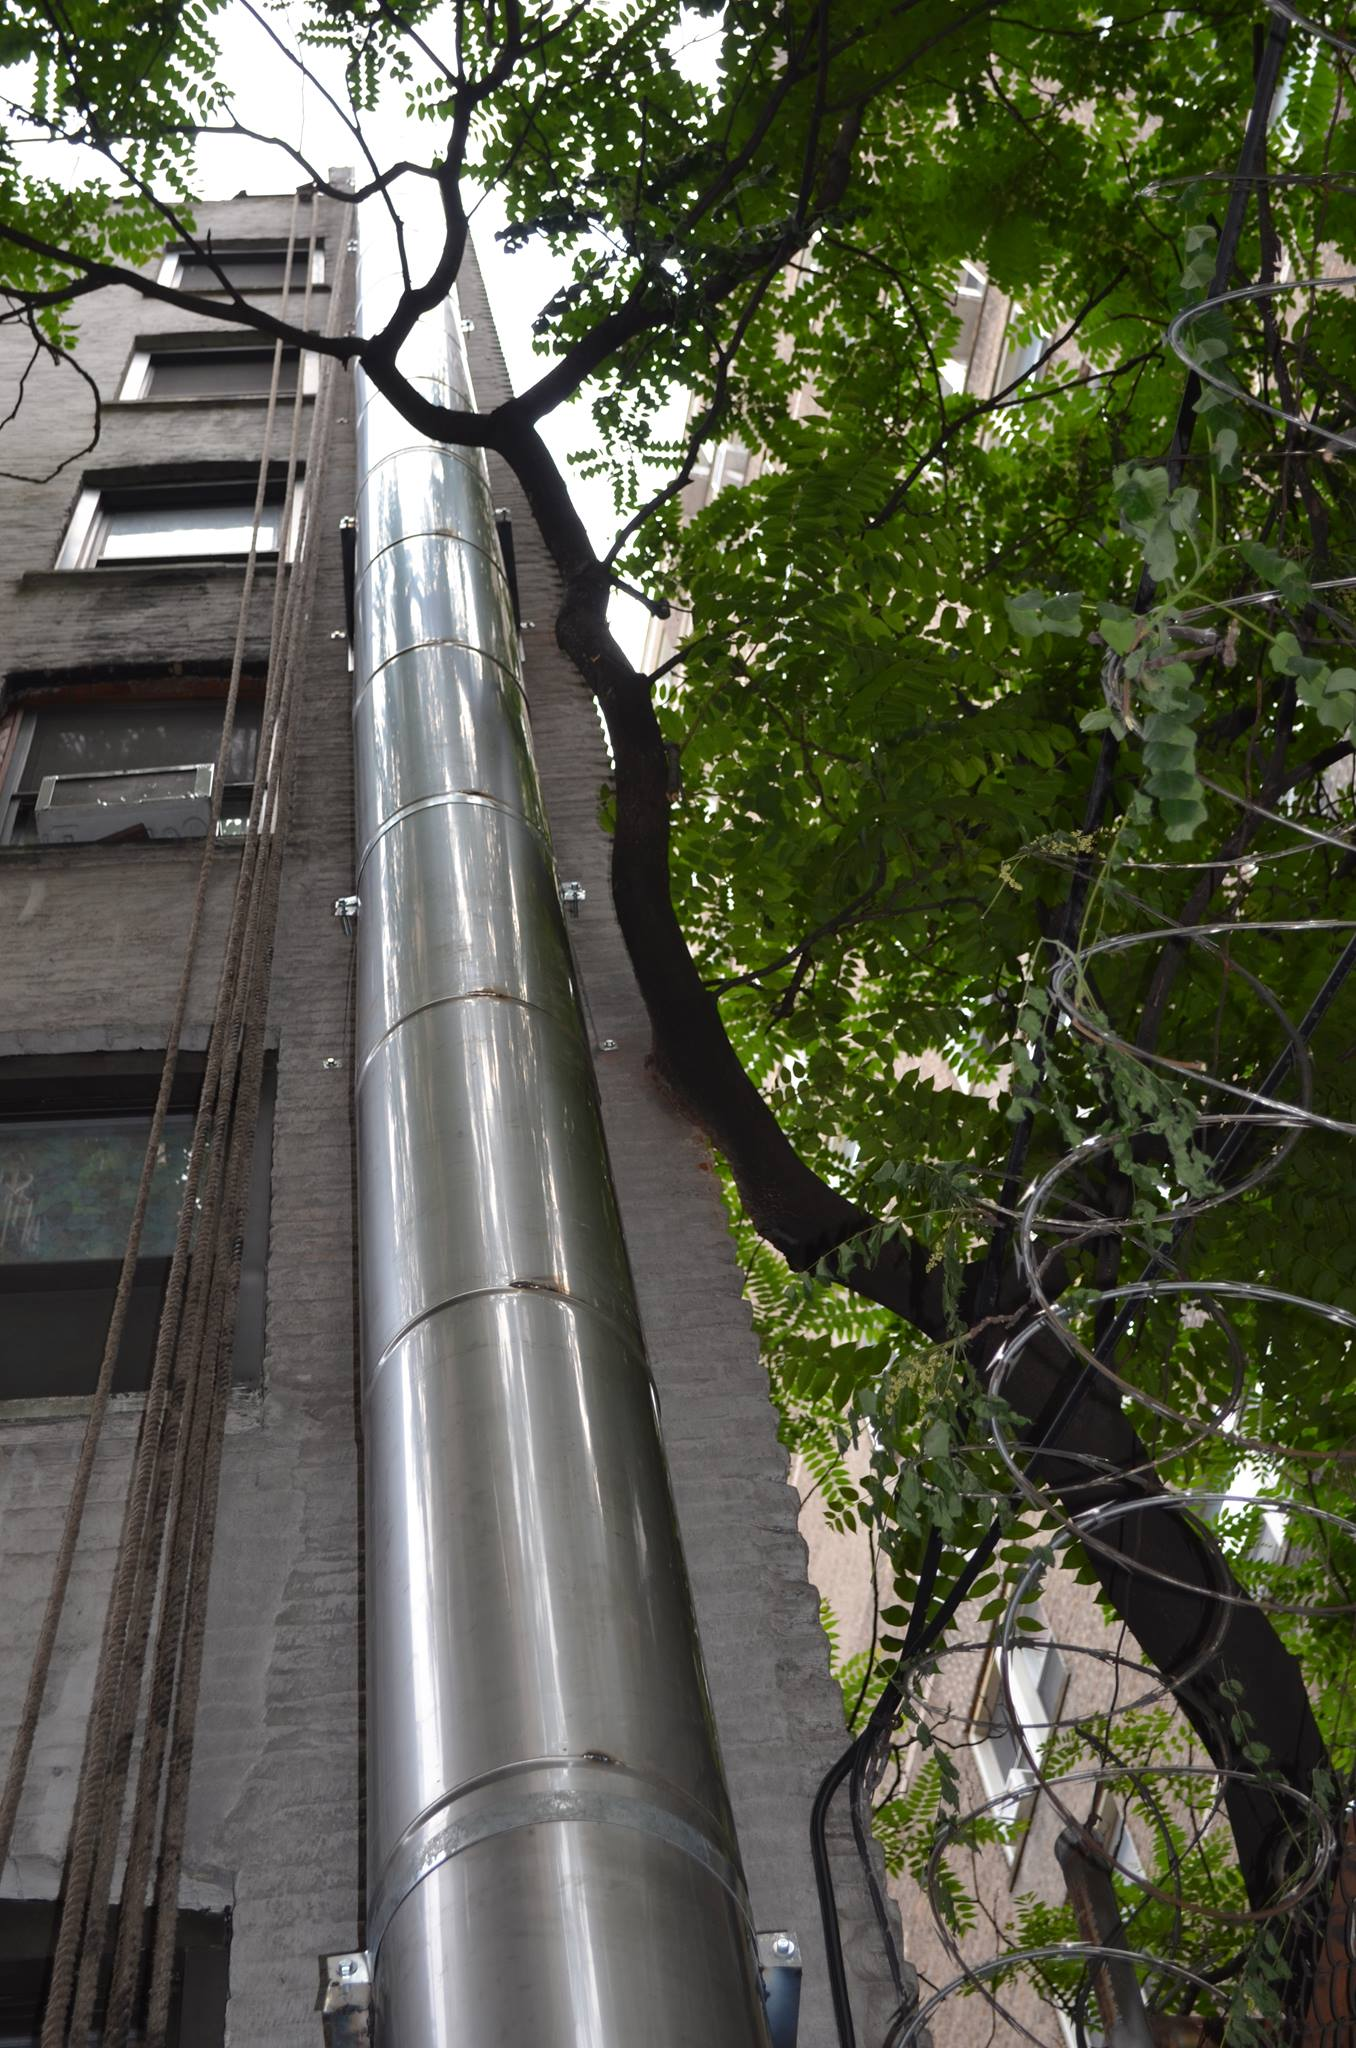 stainless steel chimney in NYC